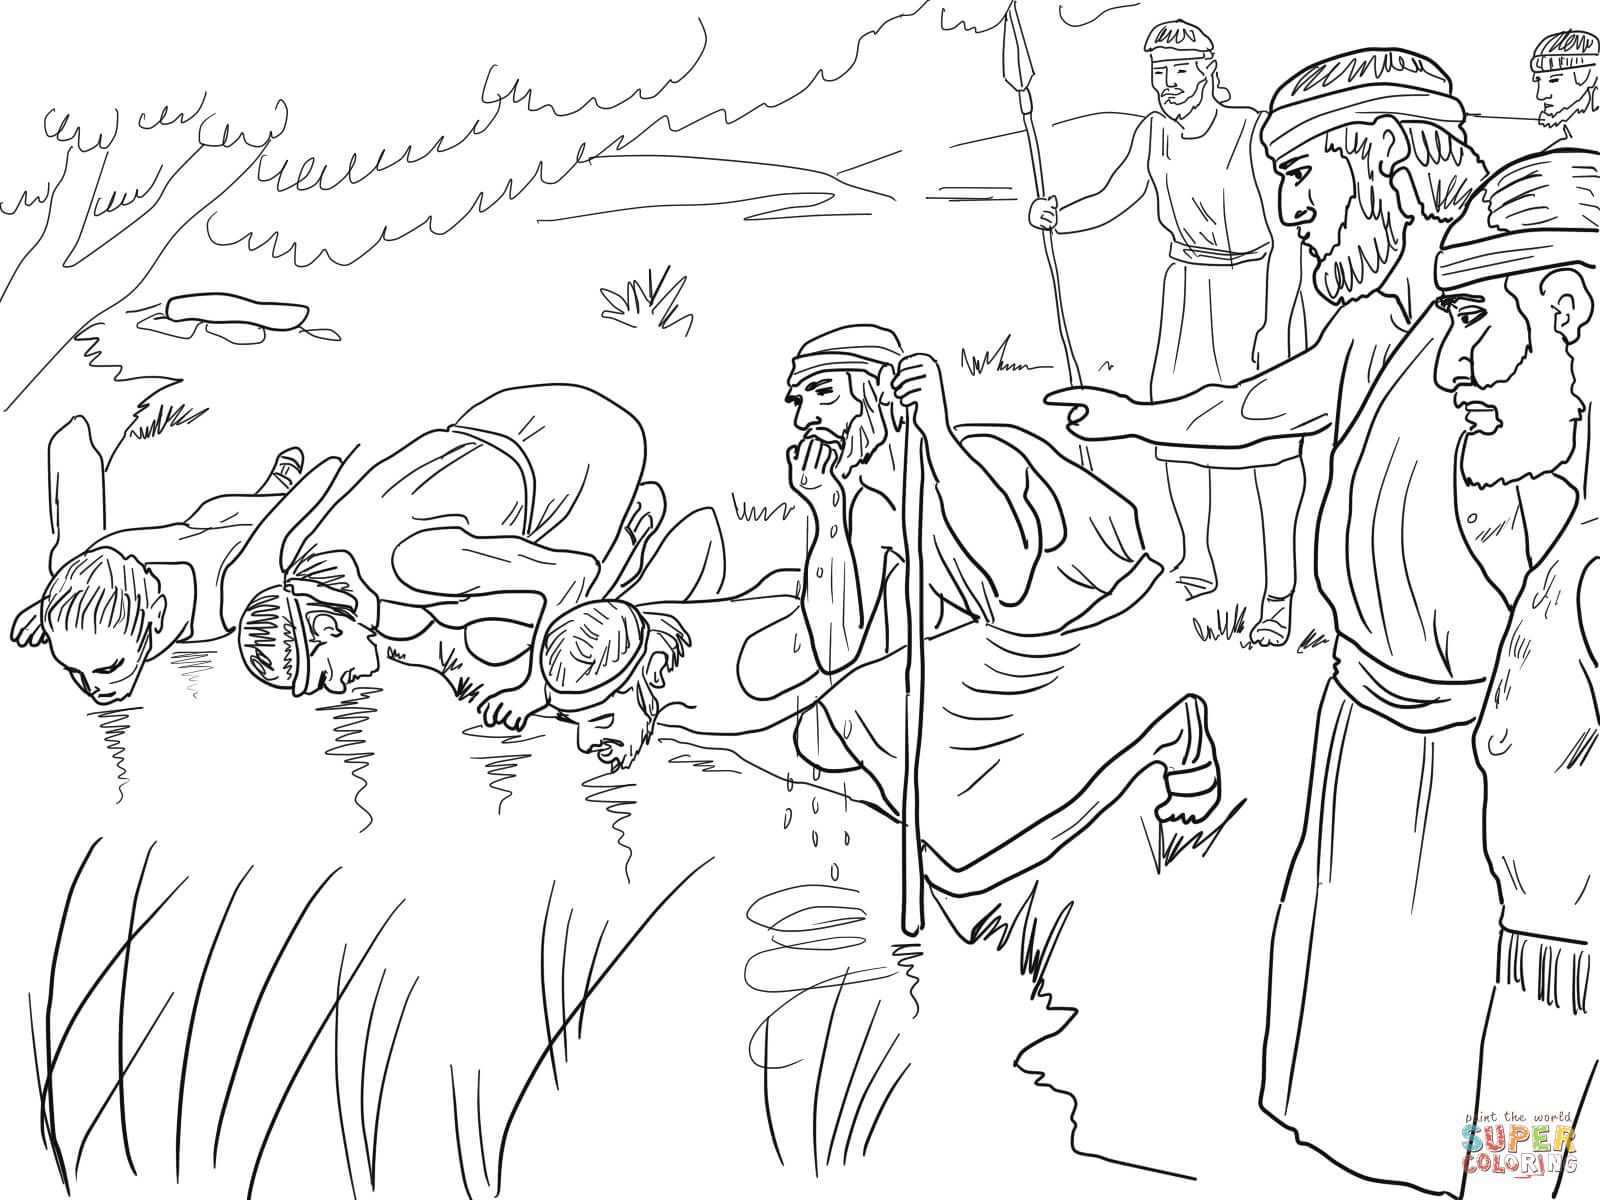 Gideon Selects His Army Of 300 Men Coloring Page From Judge Gideon Category Select From 29188 Sunday School Coloring Pages Bible Coloring Pages Coloring Pages